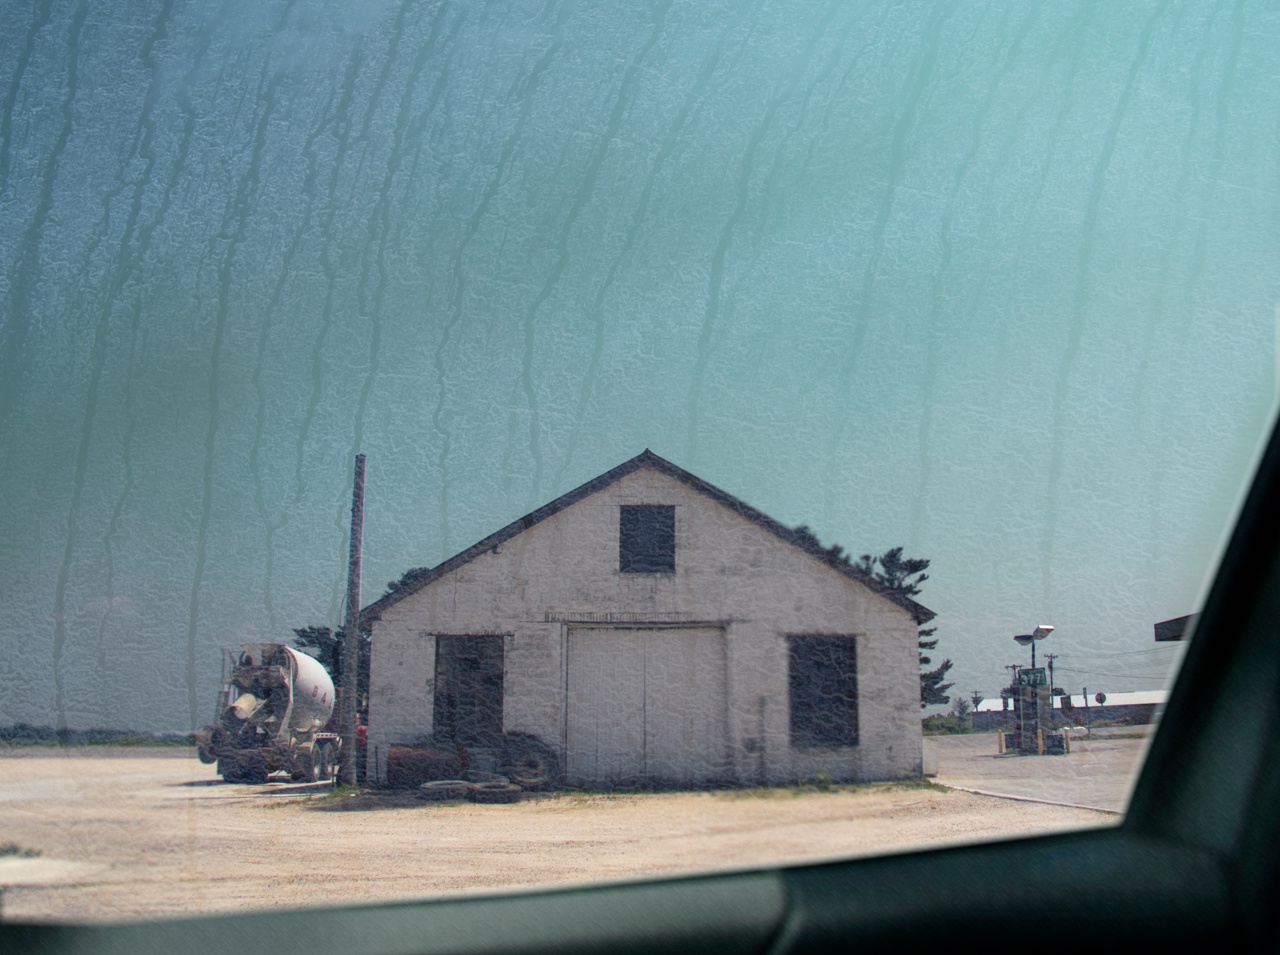 Image of white building with cement truck next to it shot through a streaky car window.